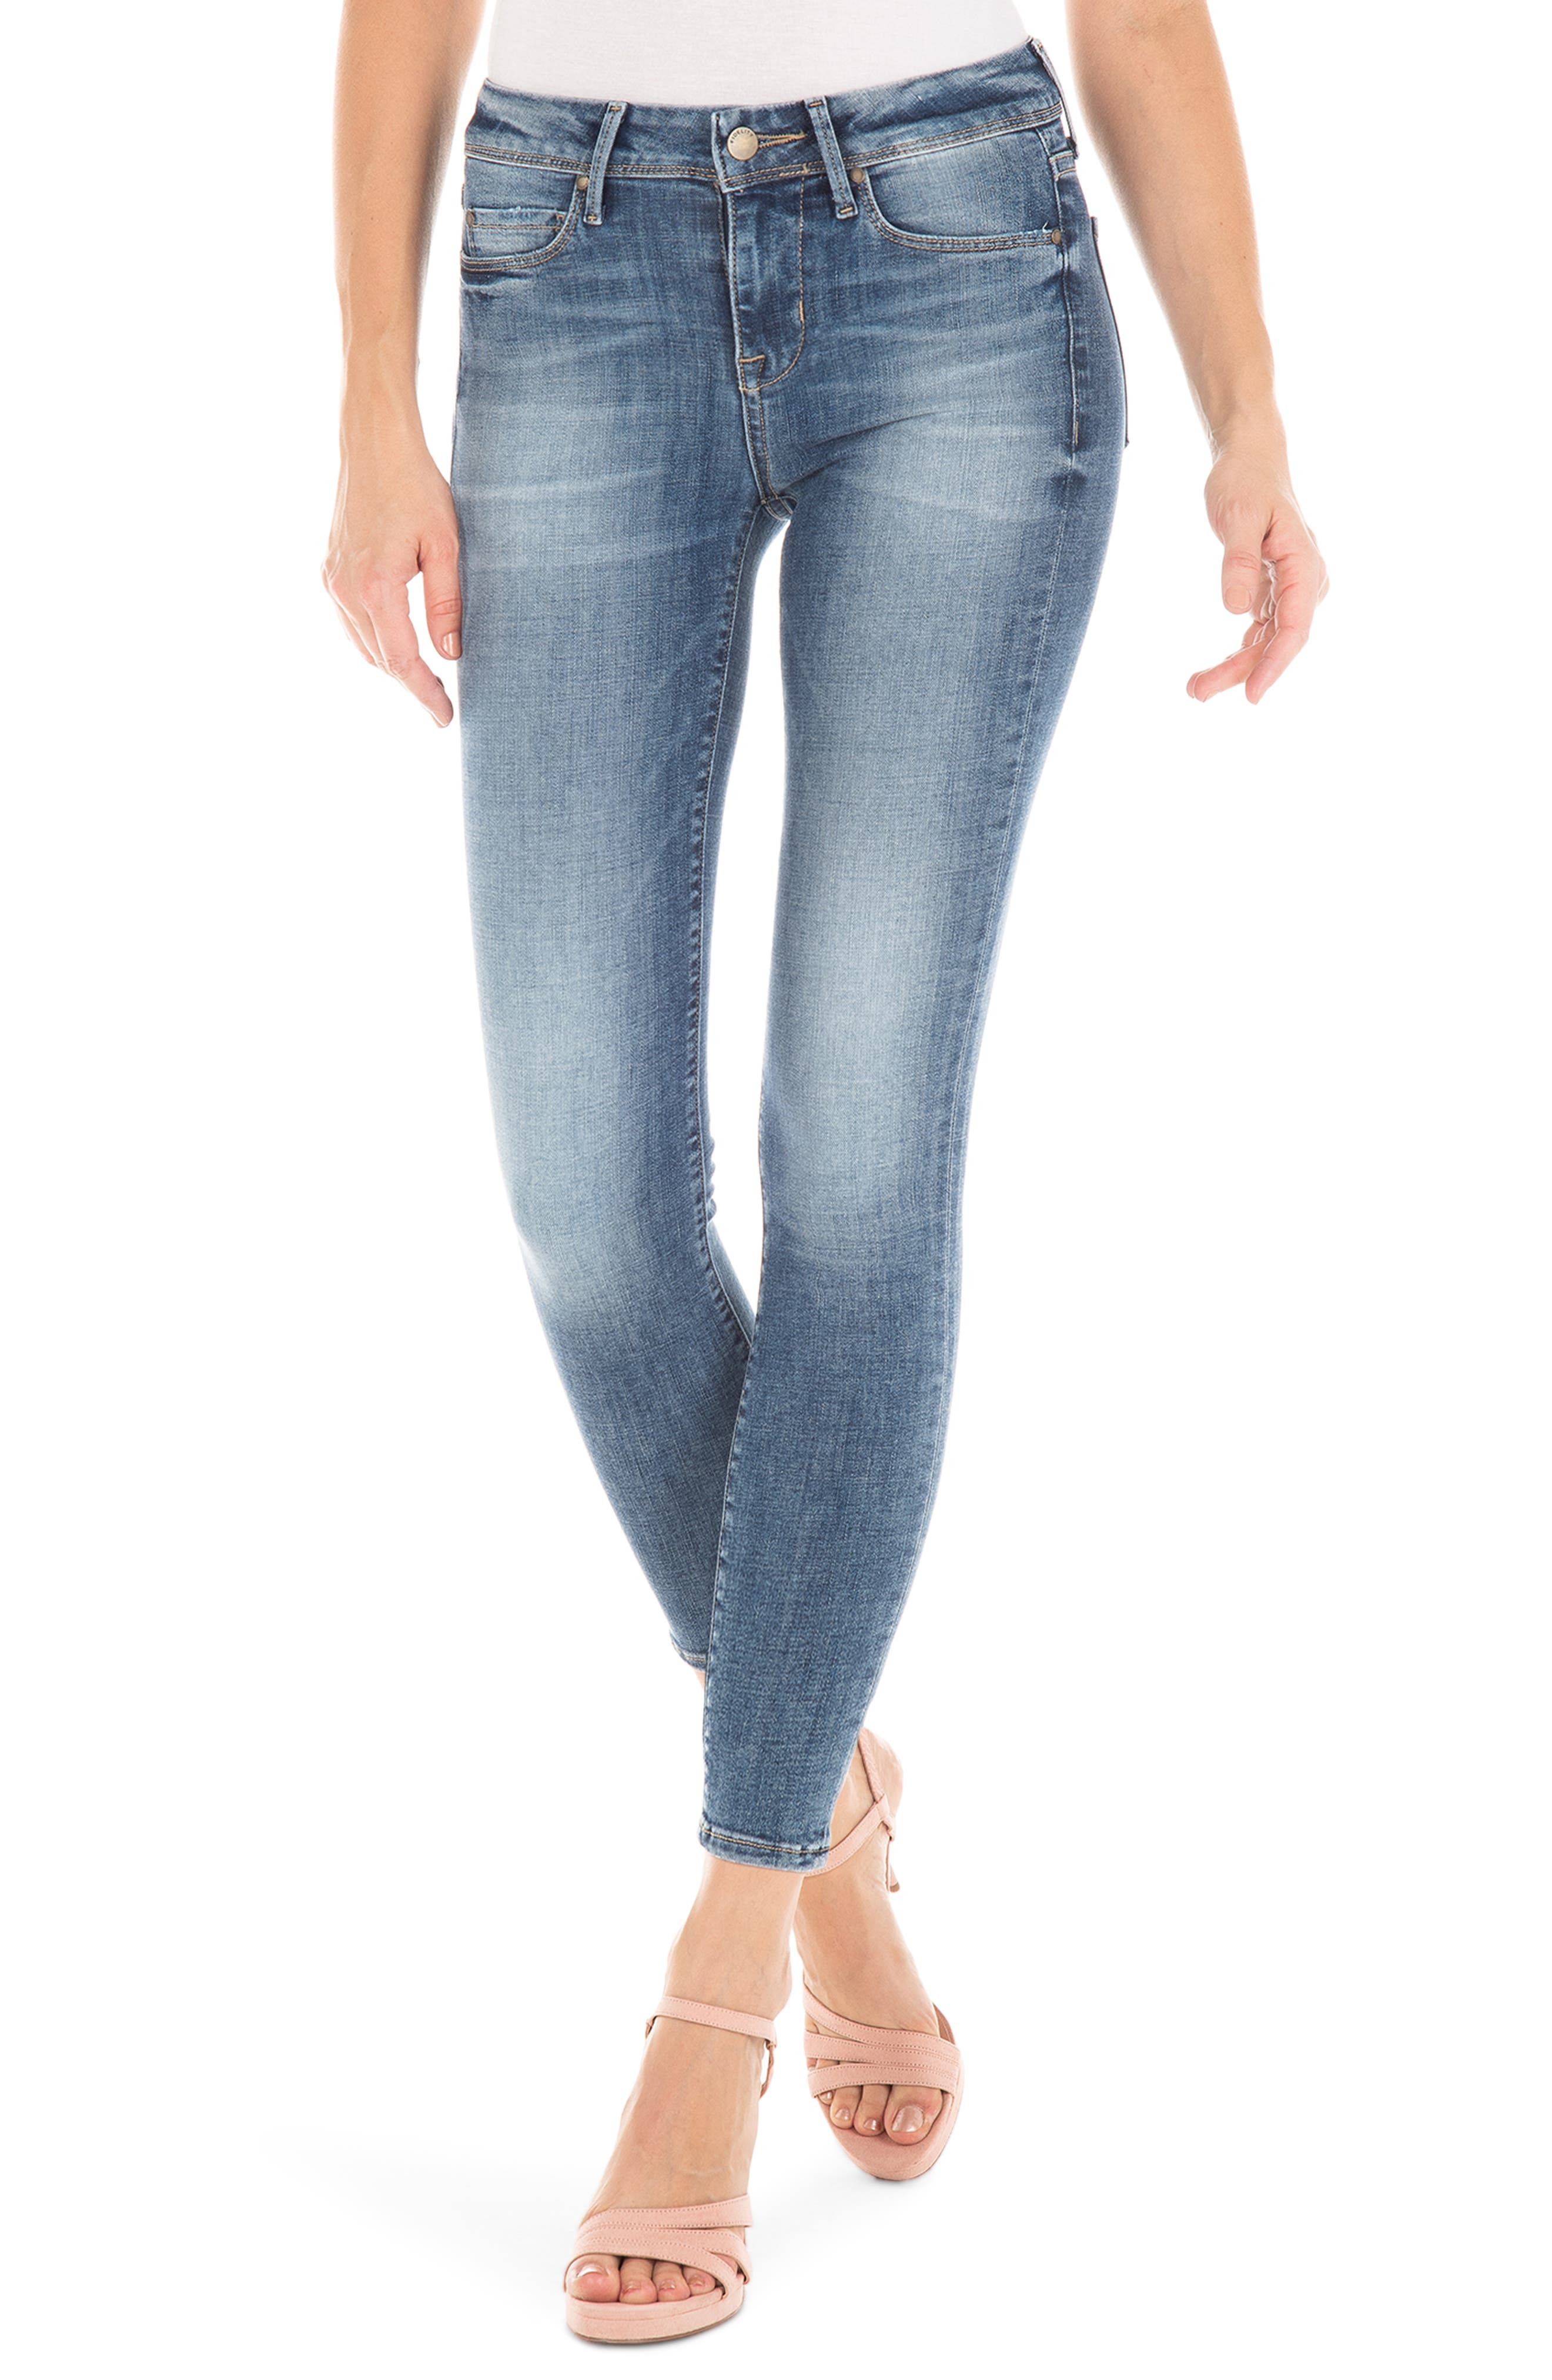 FIDELITY DENIM,                             Mila Stretch Ankle Skinny Jeans,                             Main thumbnail 1, color,                             RIVERSIDE BLUE